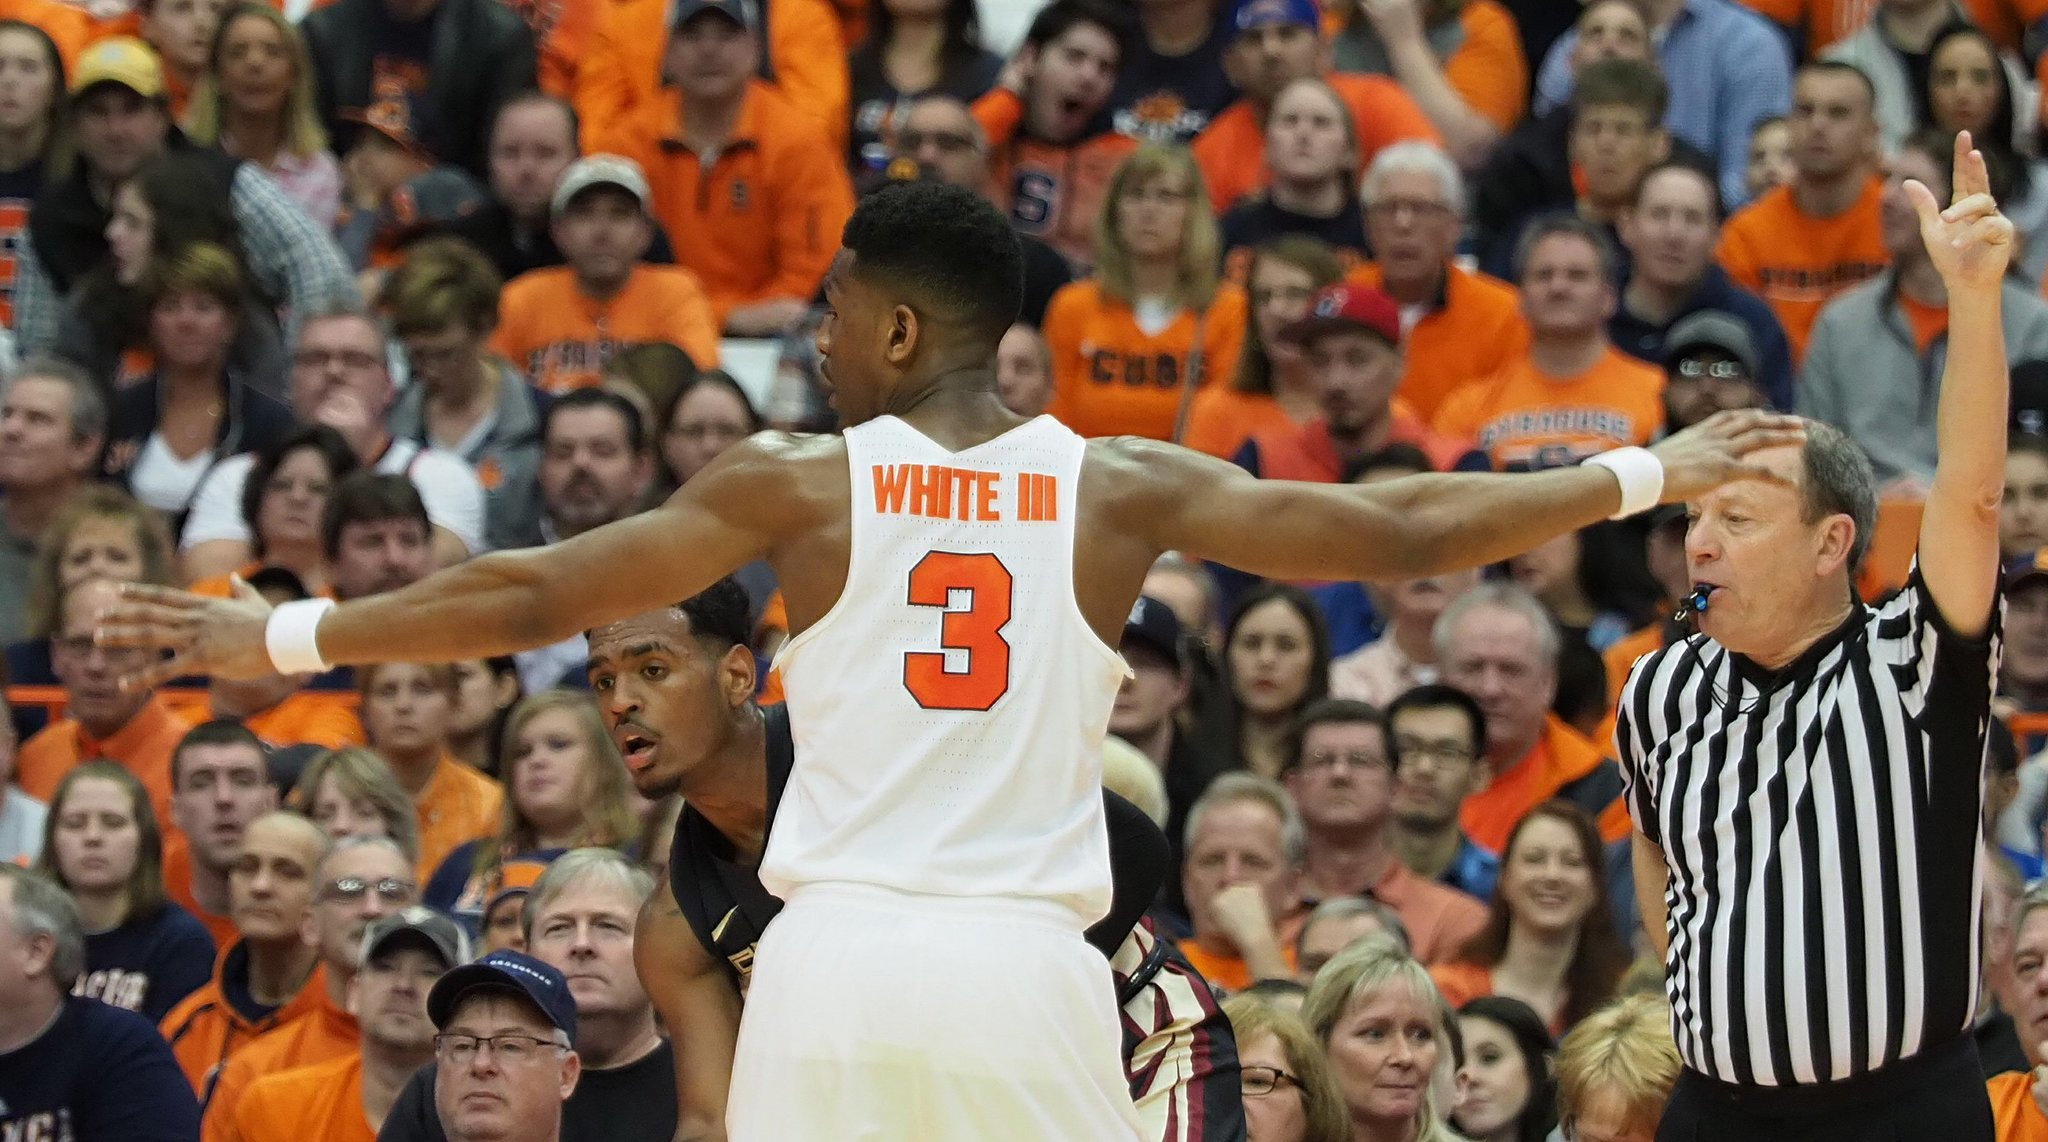 Syracuses andrew white has learned being a one dimensional player doesnt work syracuse com - Syracuse s andrew white has learned being a one dimensional player doesn t work syracuse com